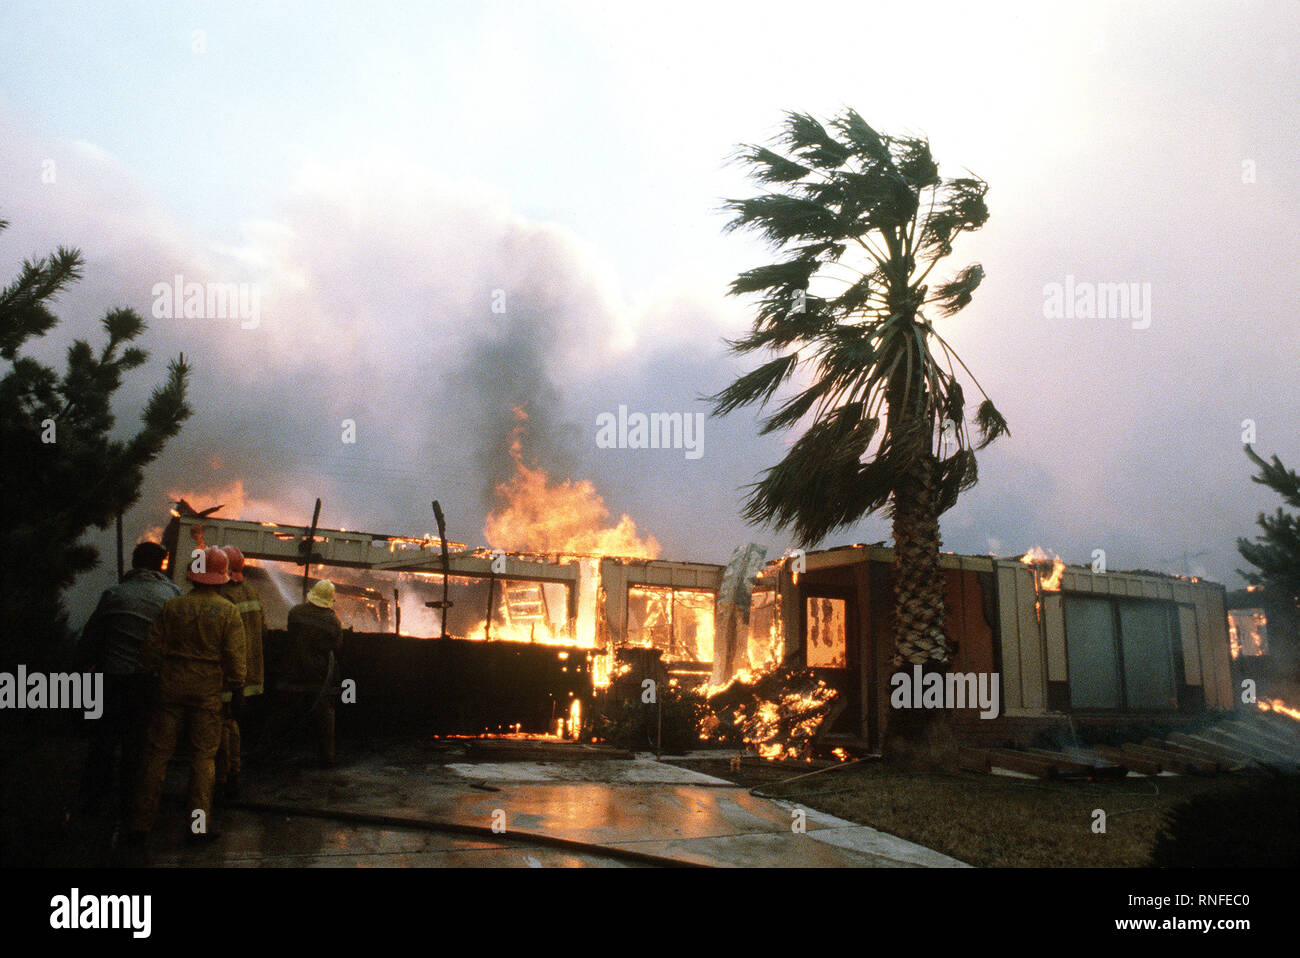 Firefighters from Norton Air Force Base battle a house fire during the four-day Panorama brush fire, which started in canyons north of town and has been whipped out of control by 40-50 mph winds. Stock Photo